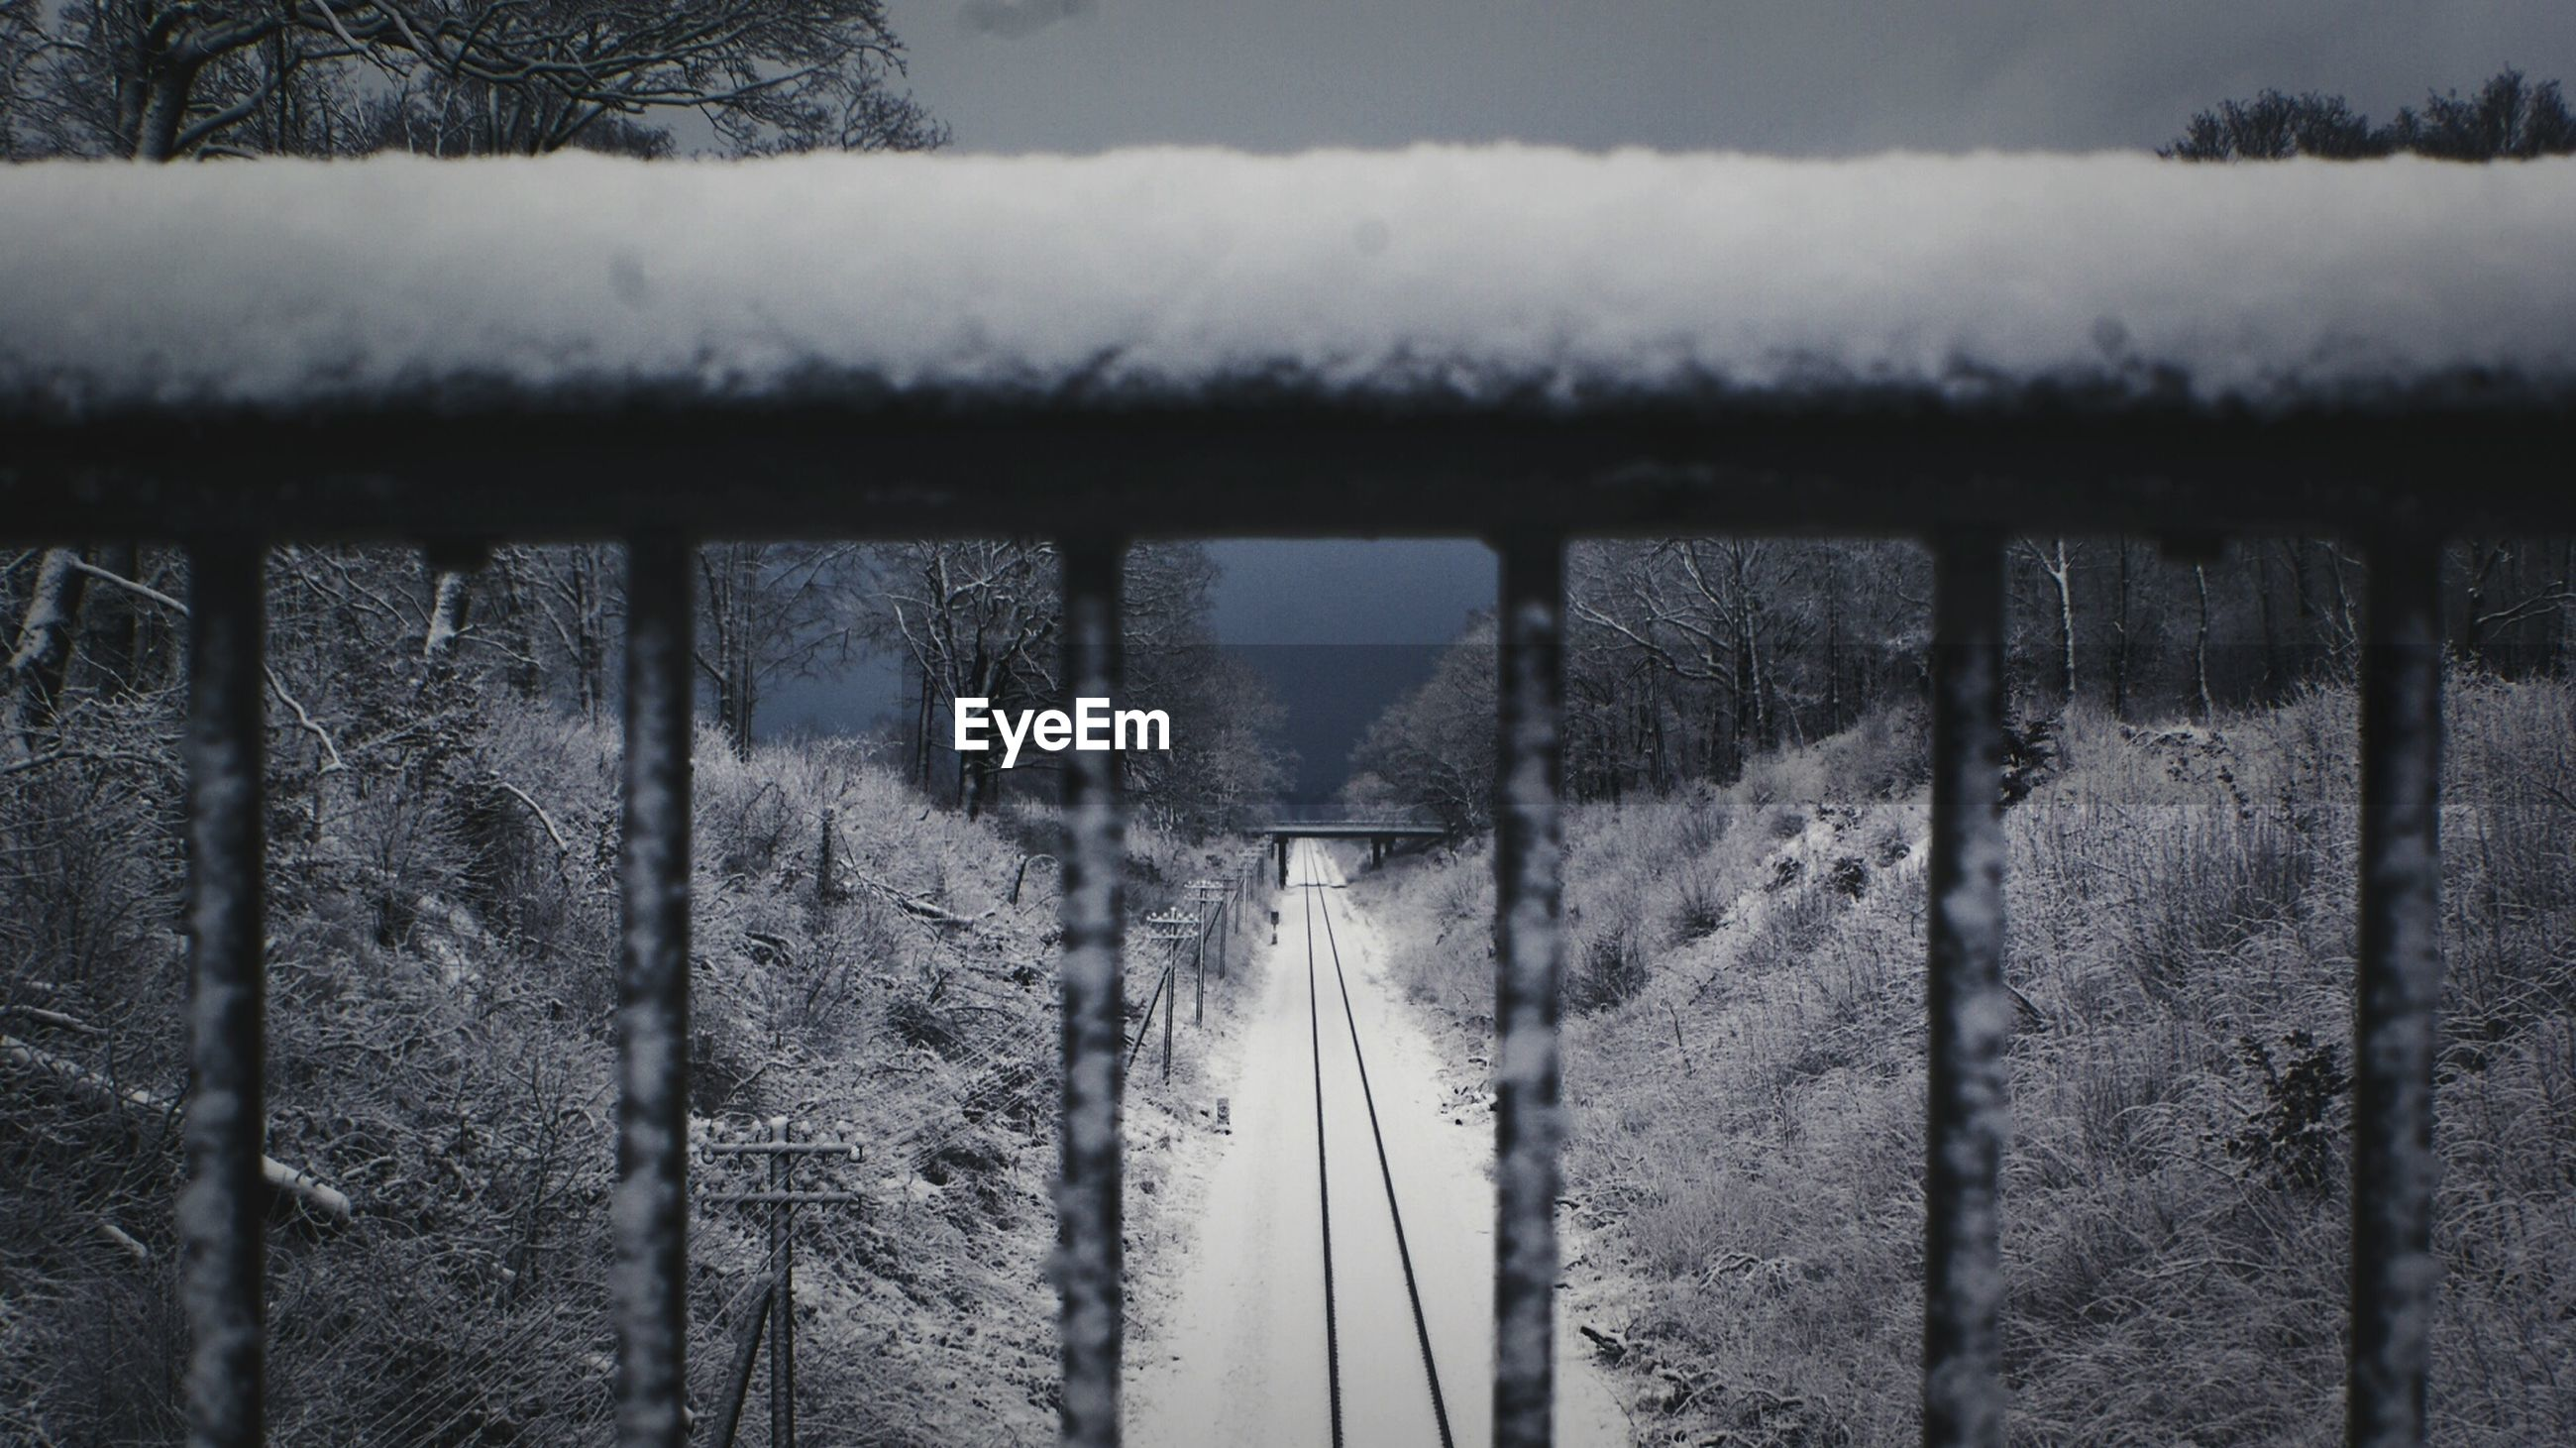 Snow covered railroad track amidst trees seen through railing